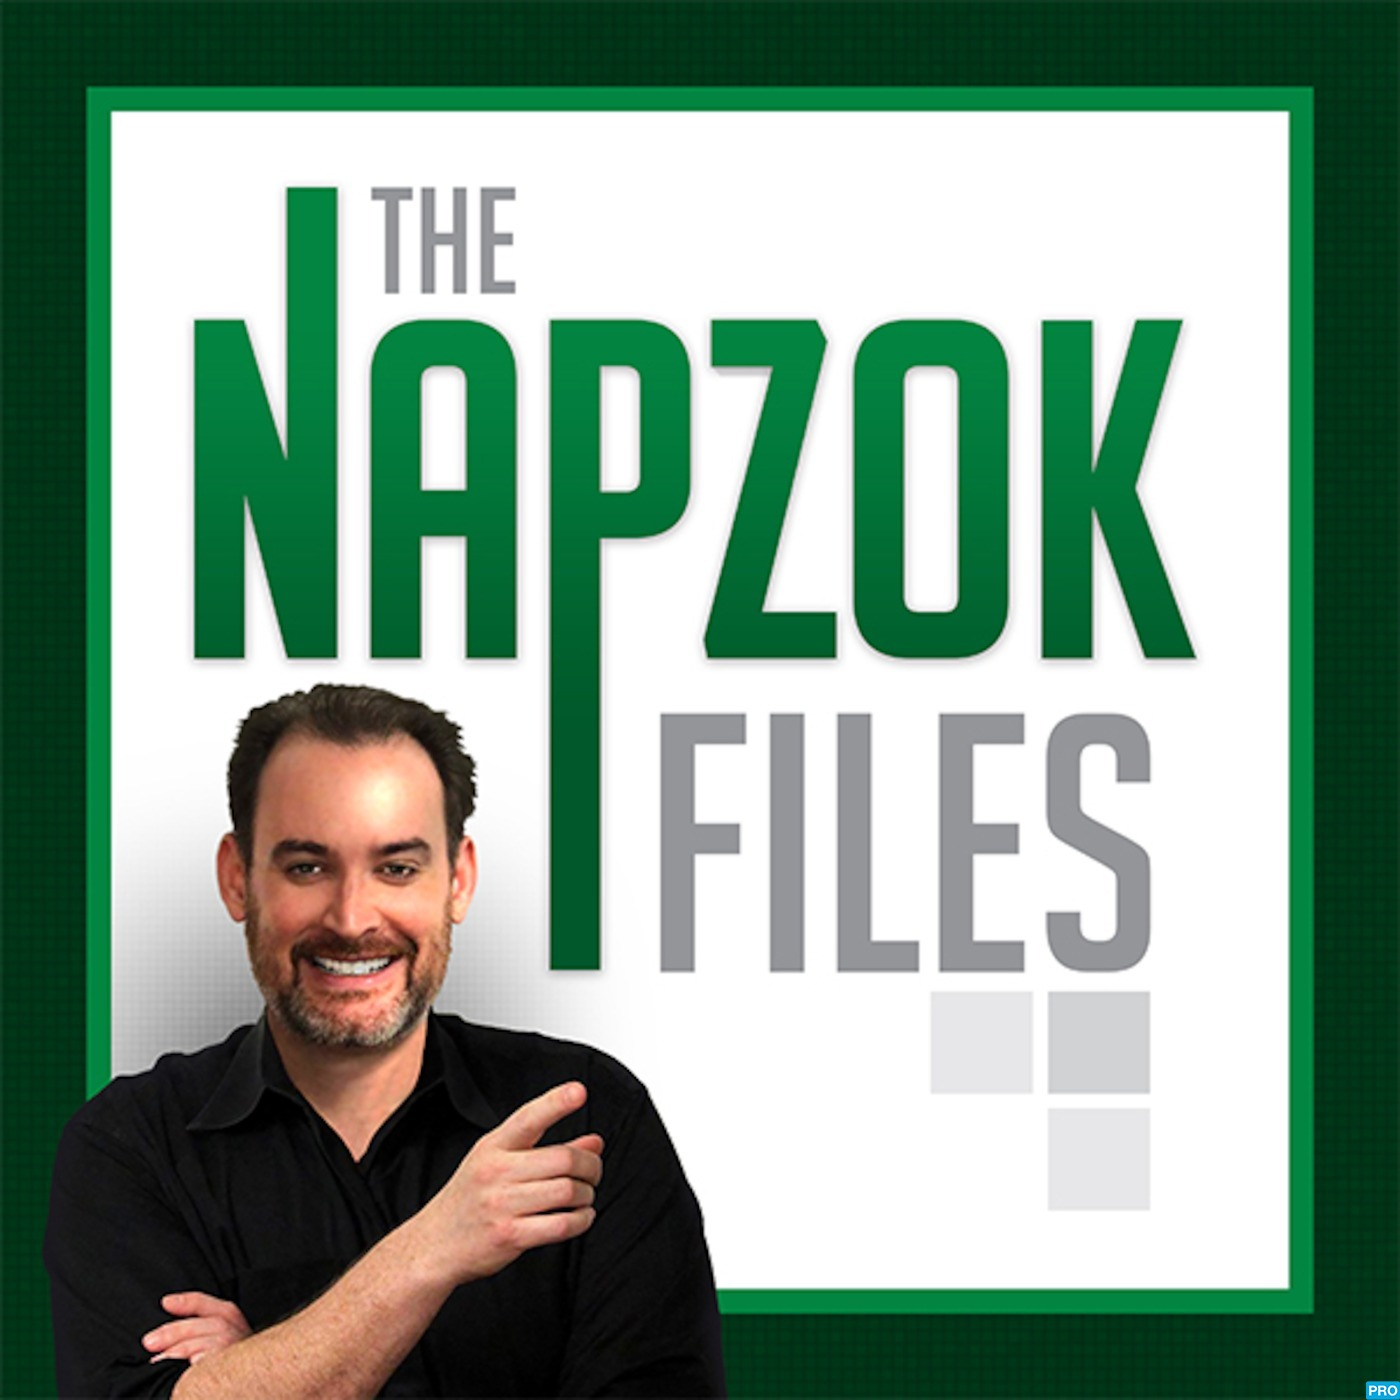 The Napzok Files